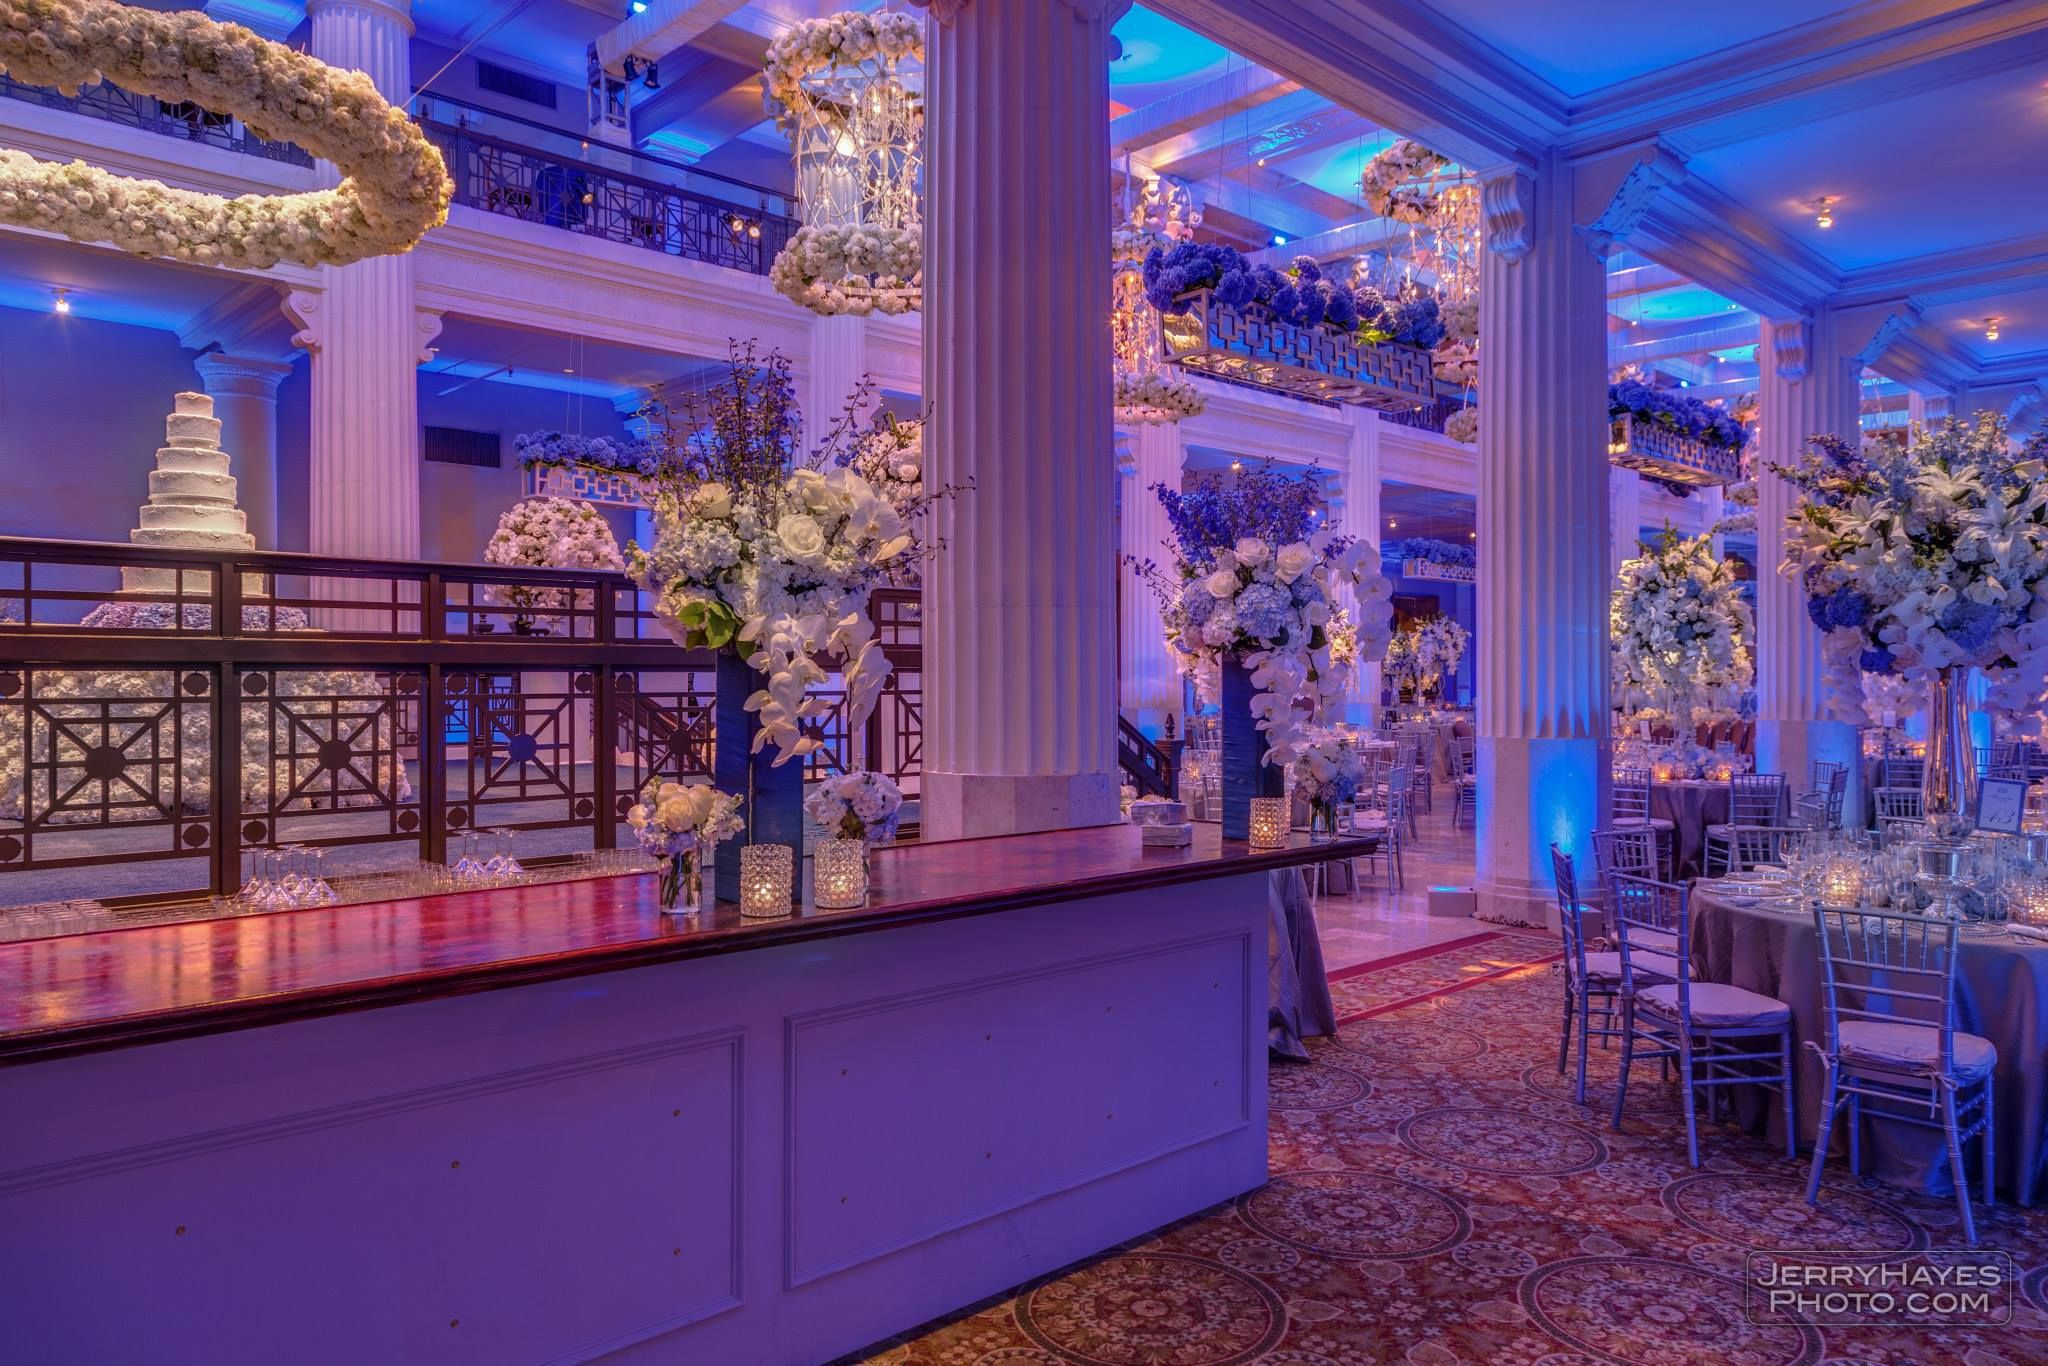 Flowers, Furnishings and Decor: Events In Bloom Planning: Angela Nix Photography: Jerry Hayes Photography — at The Corinthian.